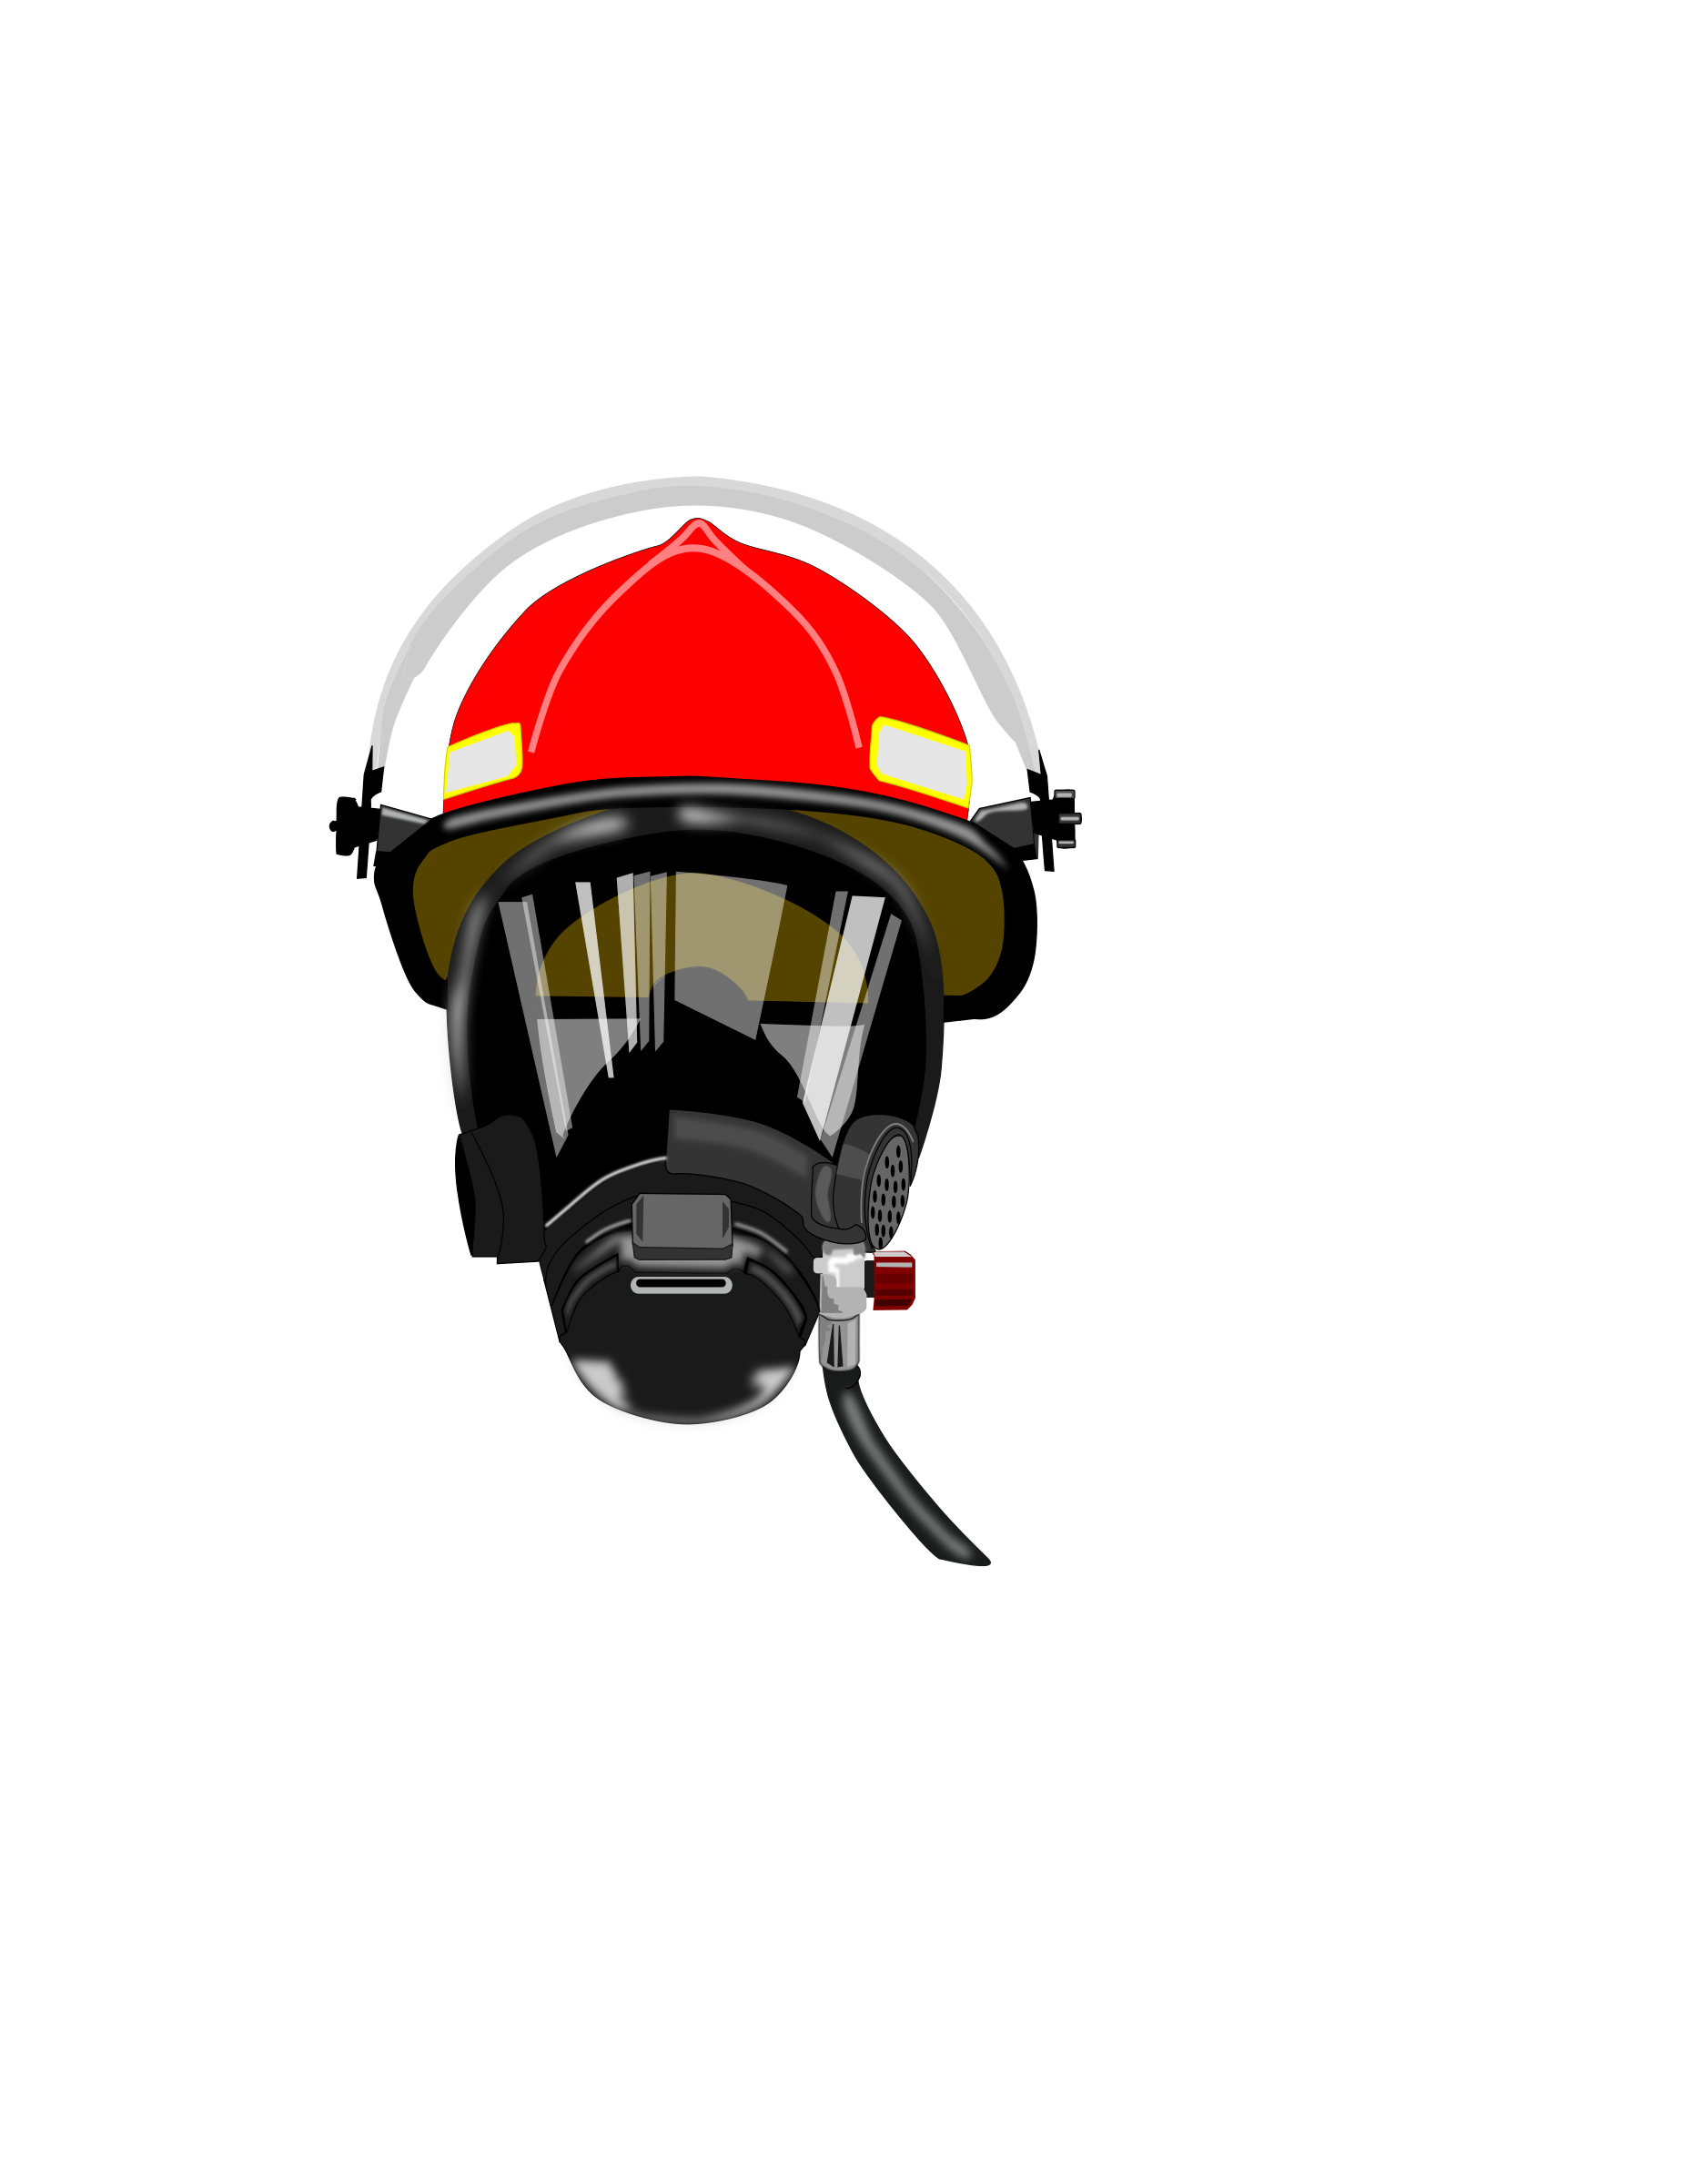 fire helmet/mask by dashell